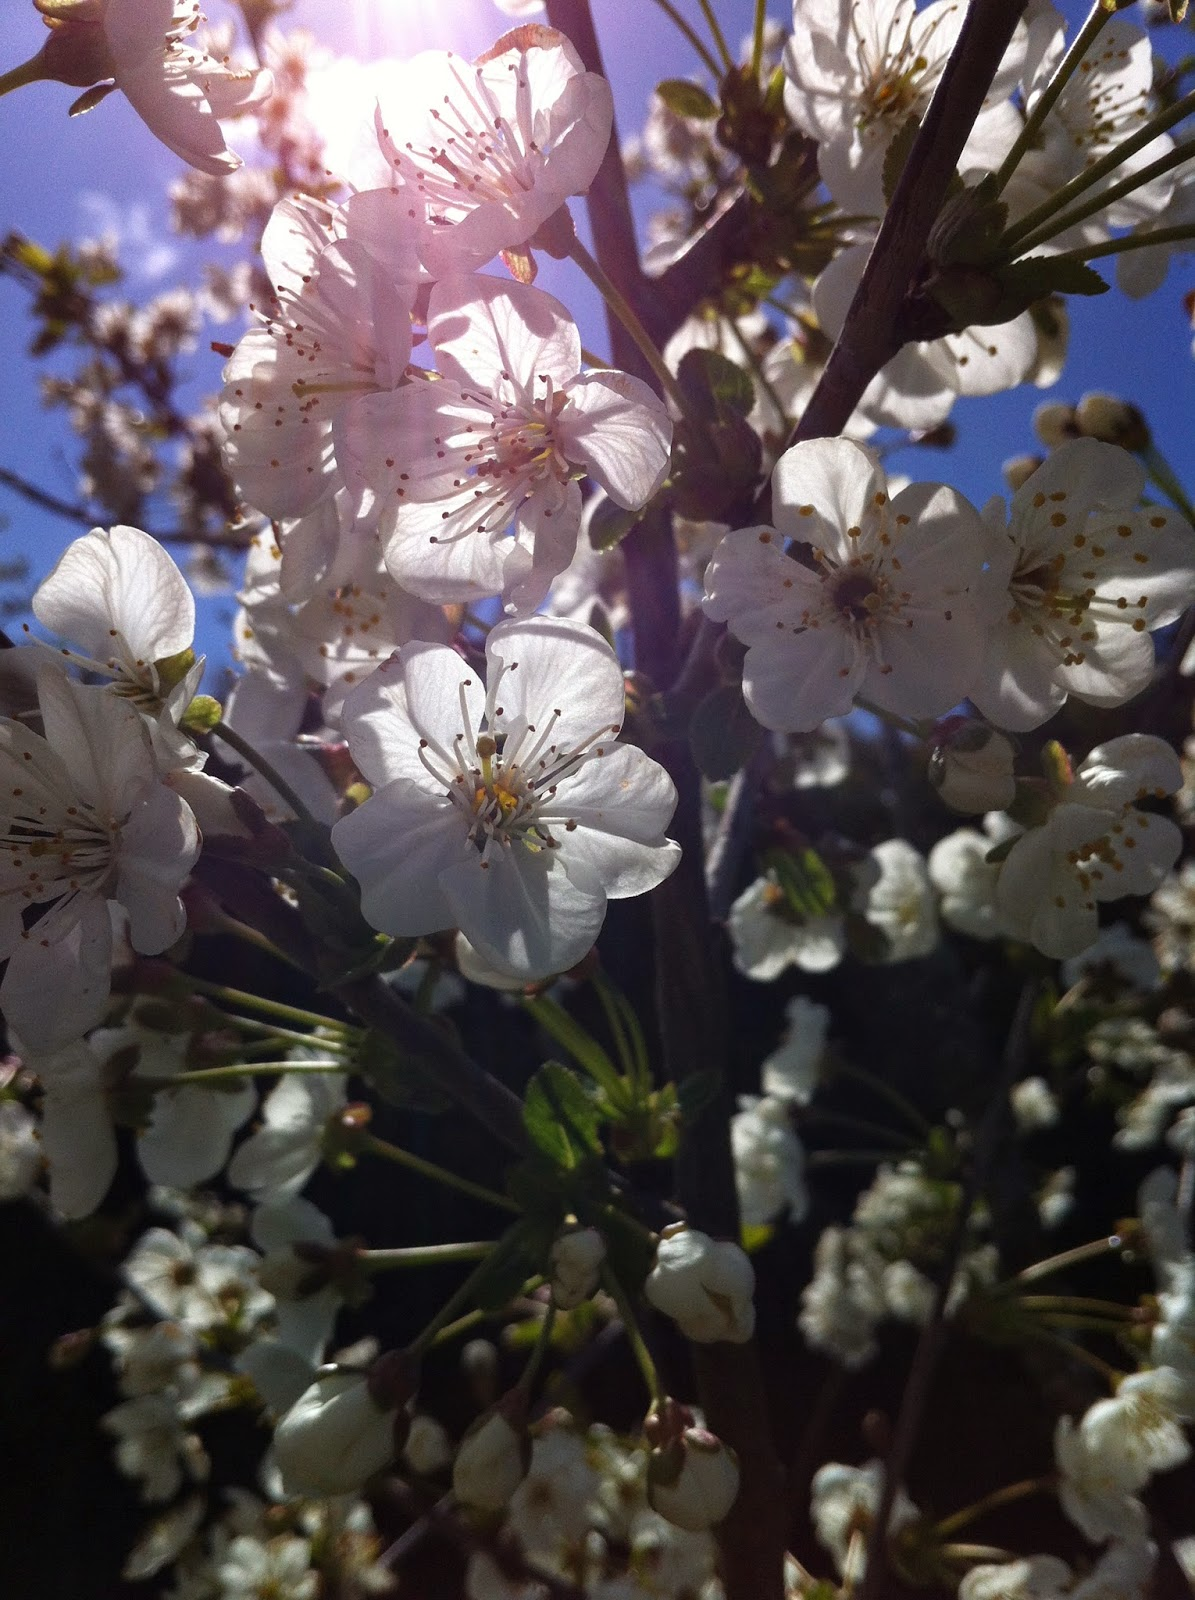 Sunlight streaming through morello cherry blosssom